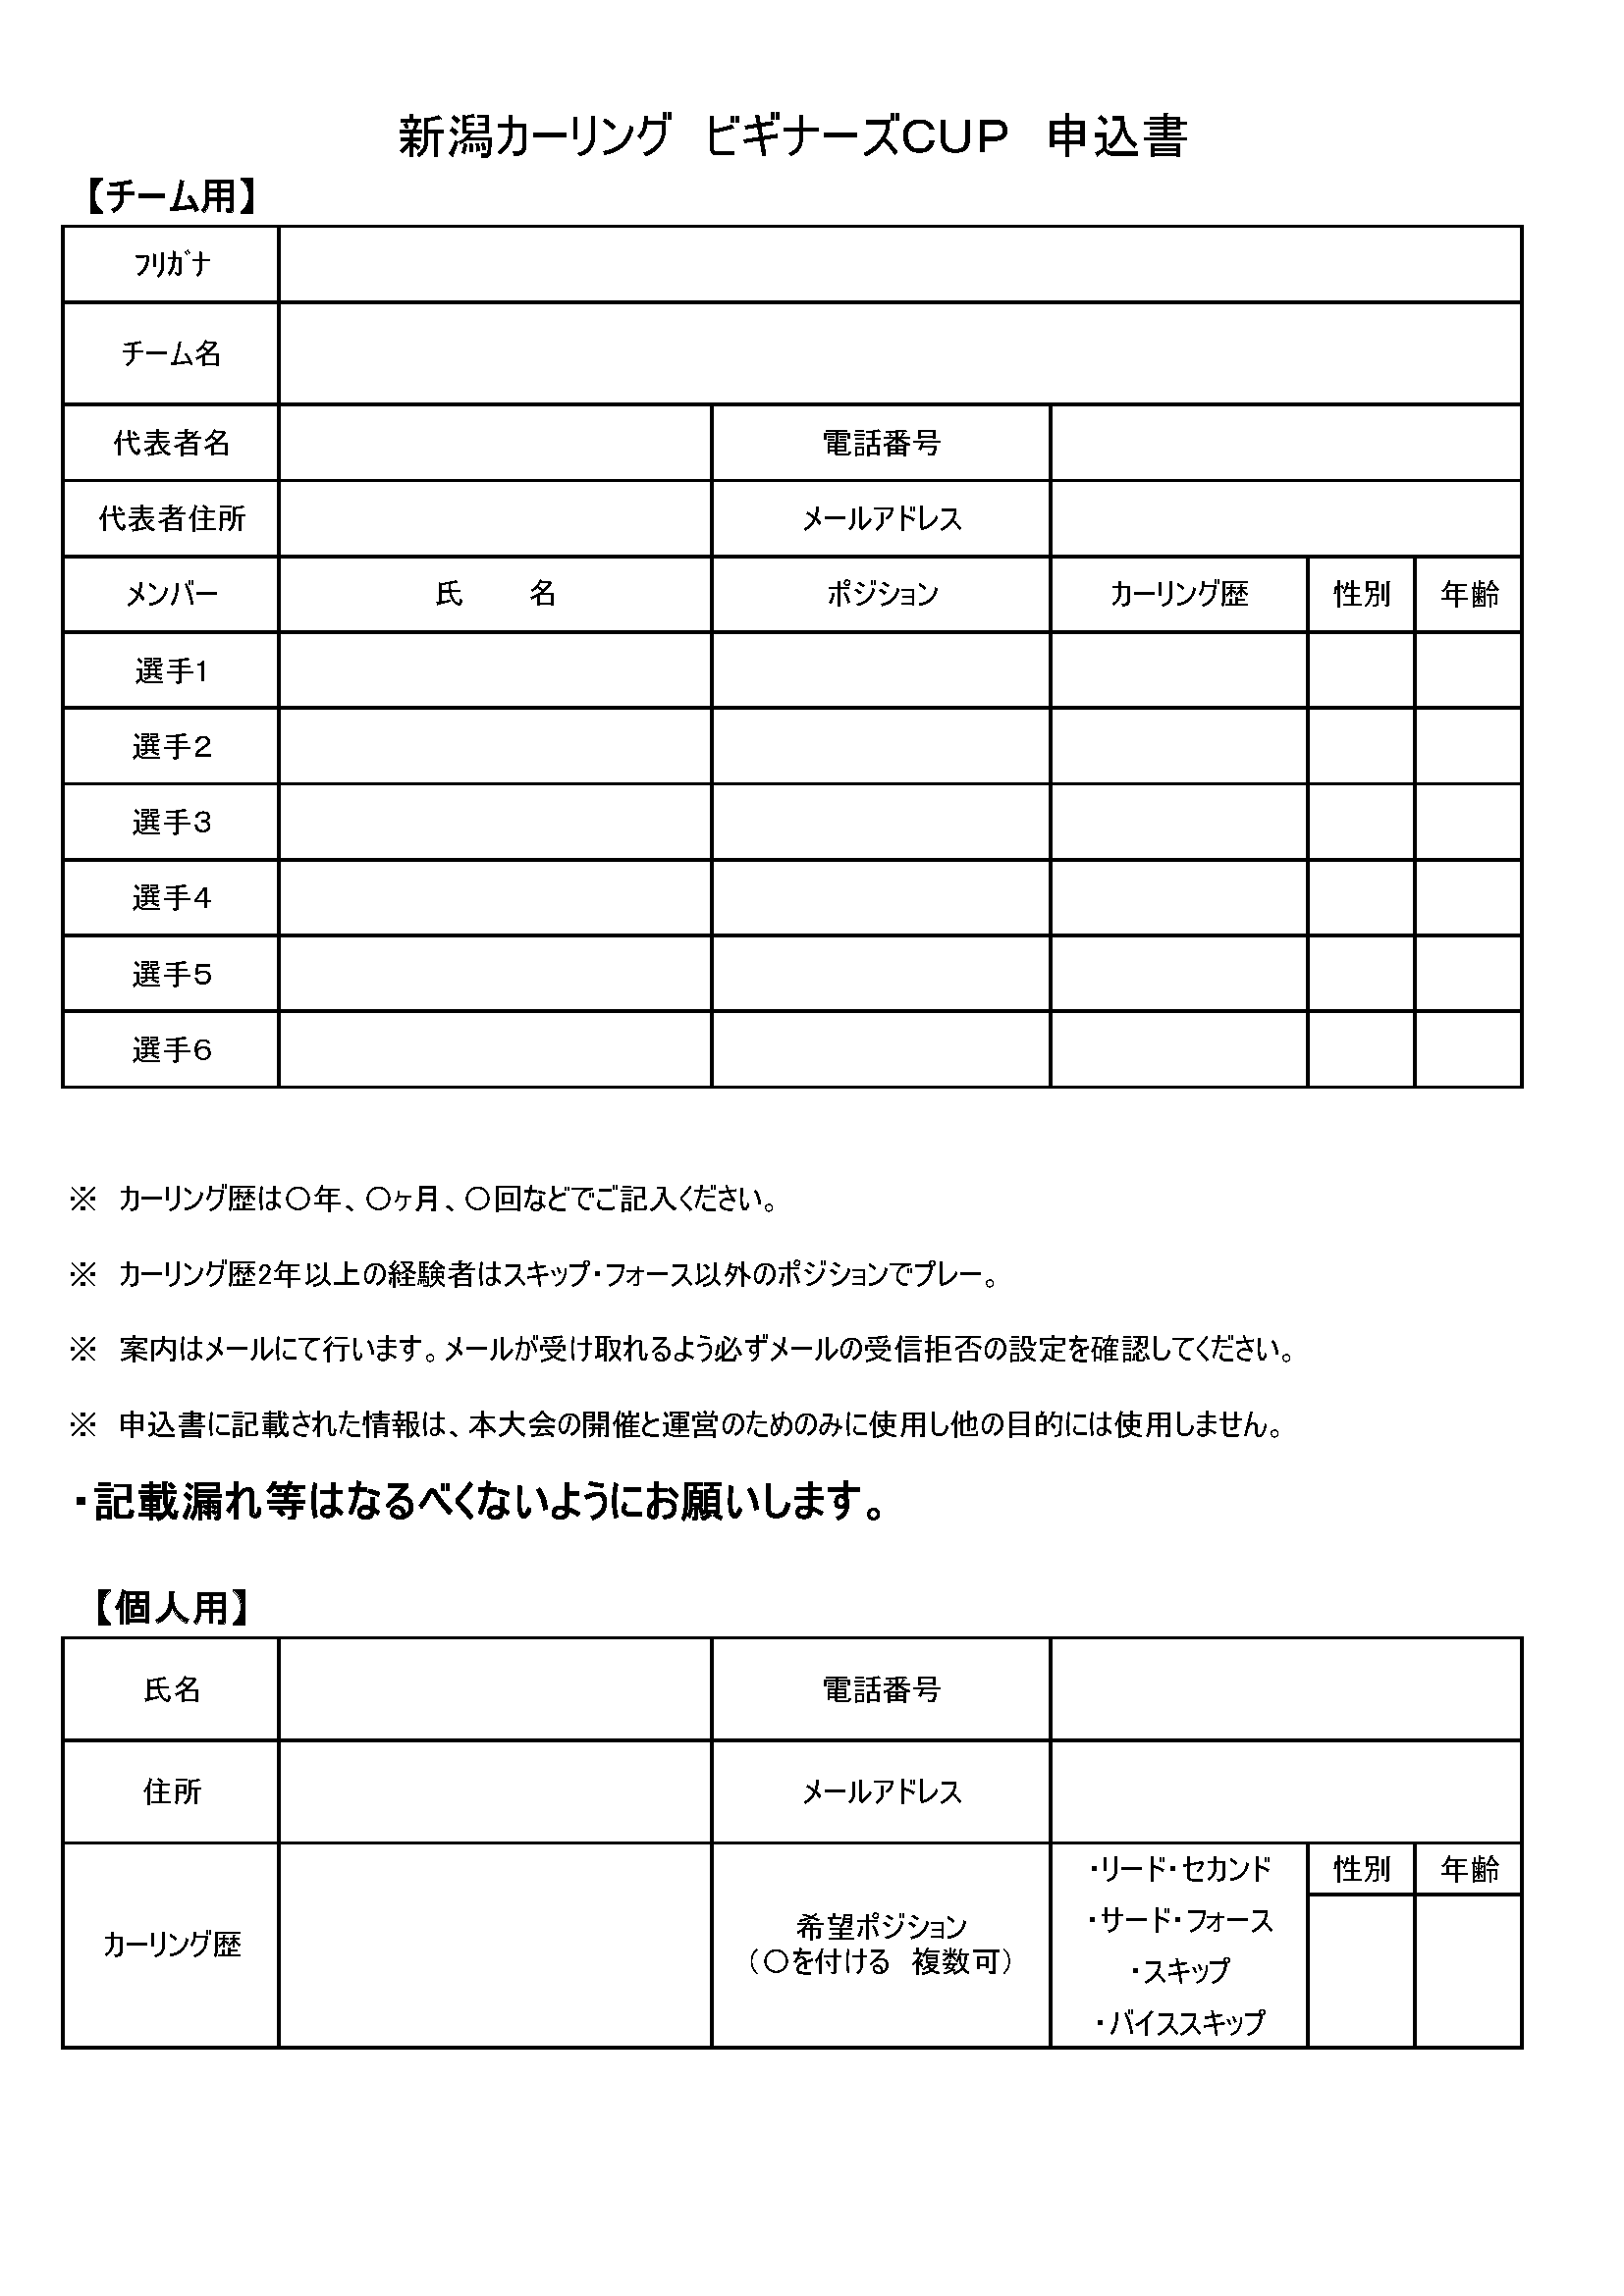 Beginners CUP application form